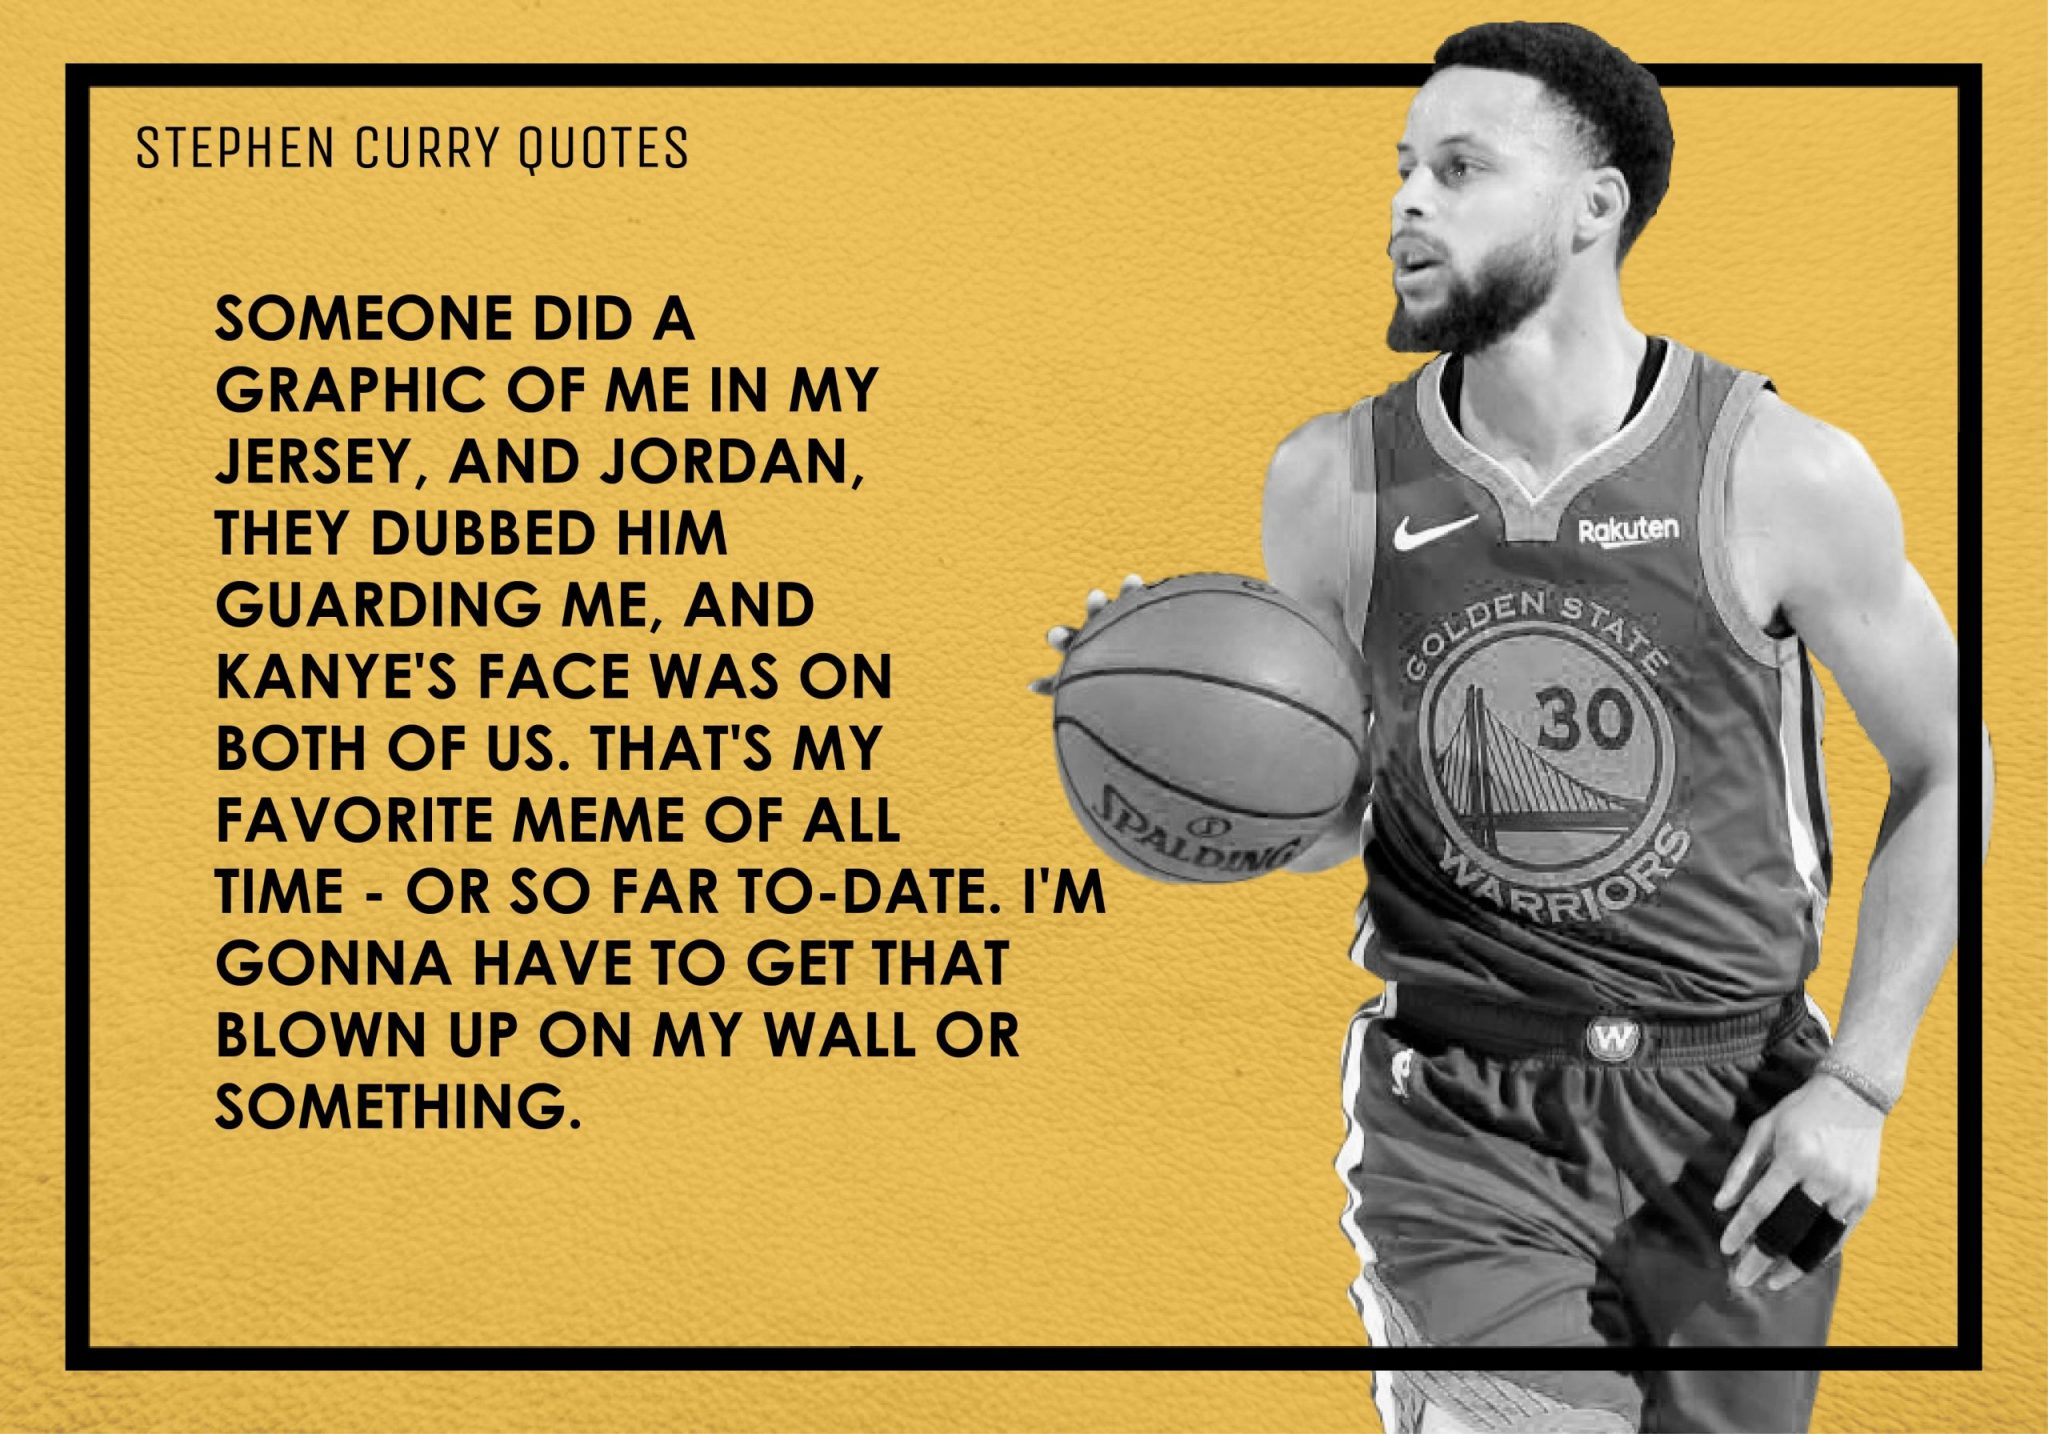 Stephen Curry Quotes (3)